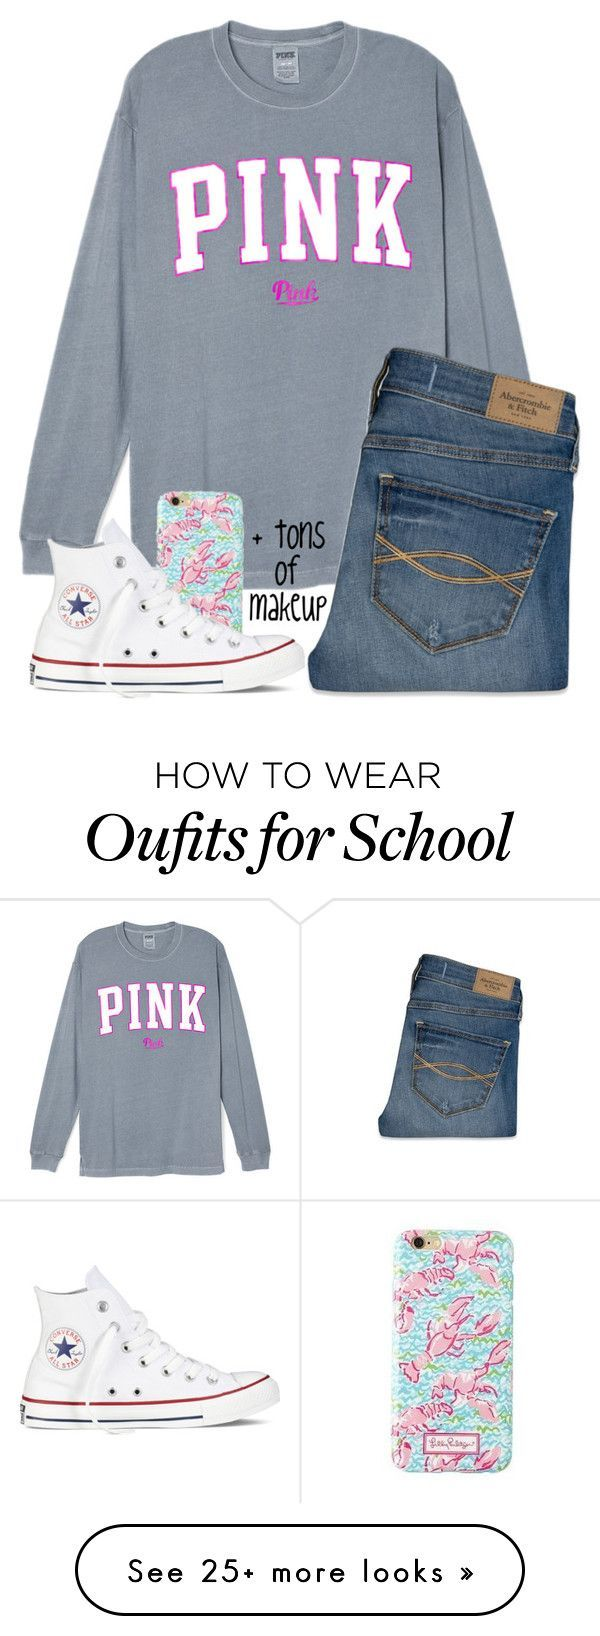 """What a ton of girls wear at my school"" by hgw8503 on Polyvore featuring Abercrombie & Fitch, Lilly Pulitzer, Converse, women's clothing, women's fashion, women, female, woman, misses and juniors"